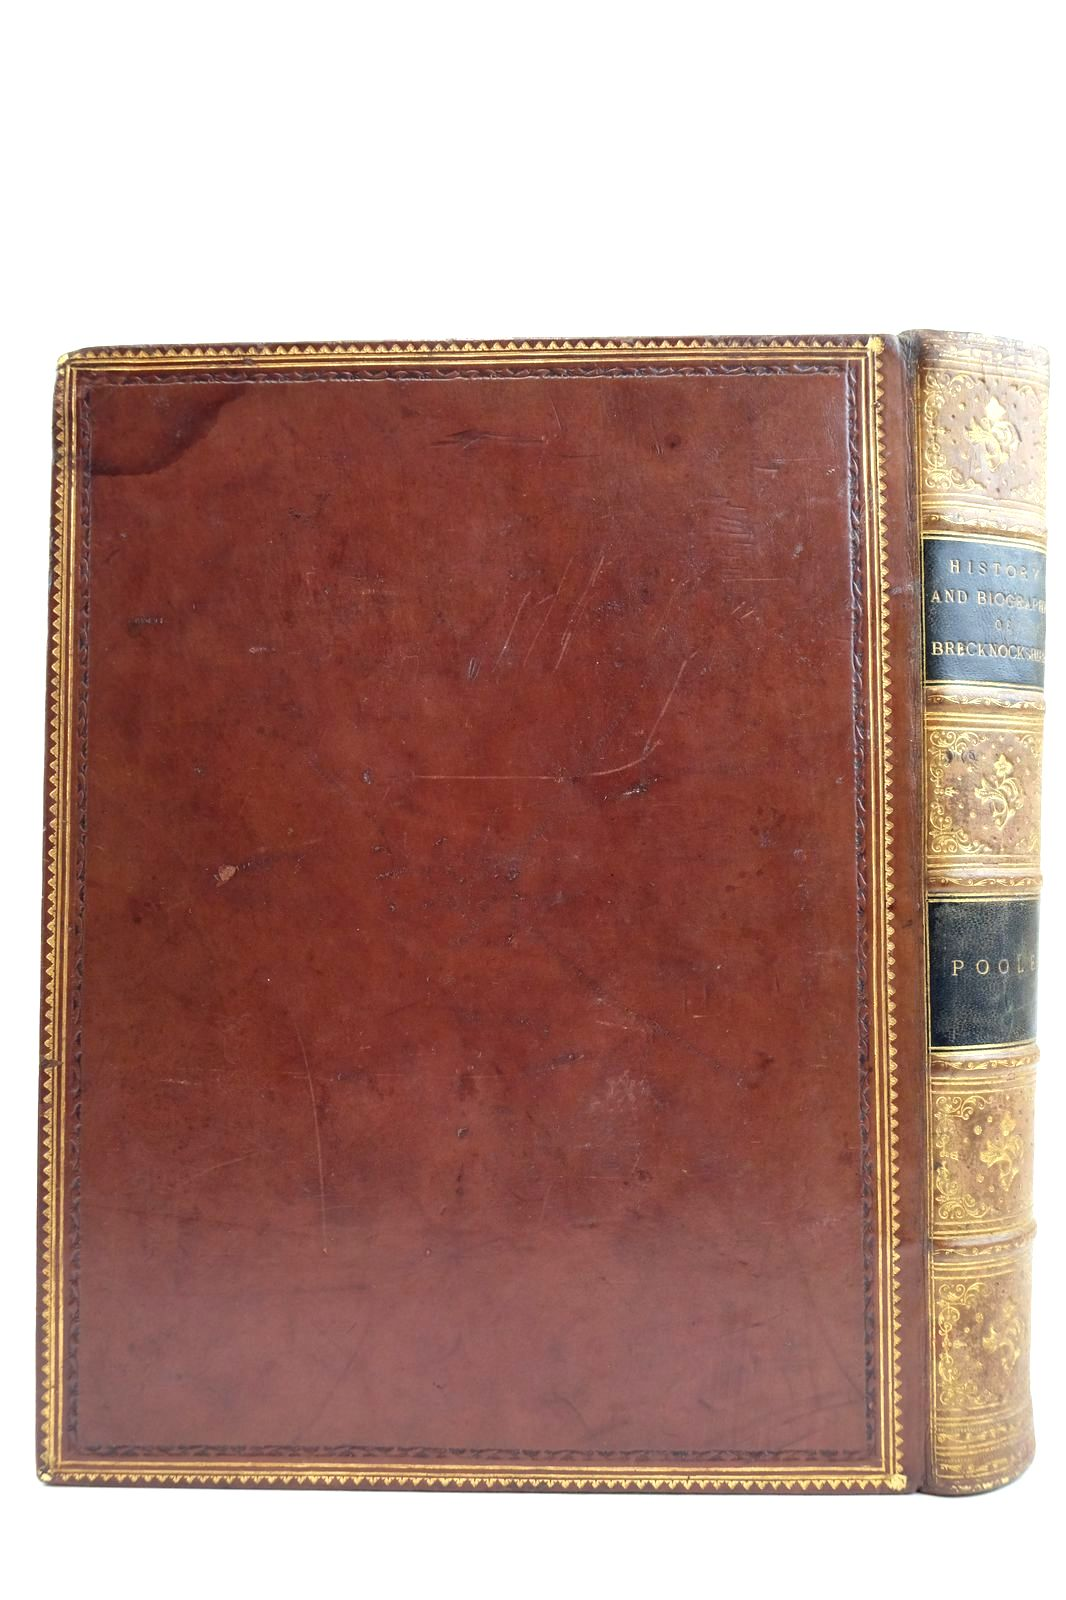 Photo of THE ILLUSTRATED HISTORY AND BIOGRAPHY OF BRECKNOCKSHIRE FROM THE EARLIEST TIMES TO THE PRESENT DAY written by Poole, Edwin published by Edwin Poole (STOCK CODE: 2132629)  for sale by Stella & Rose's Books